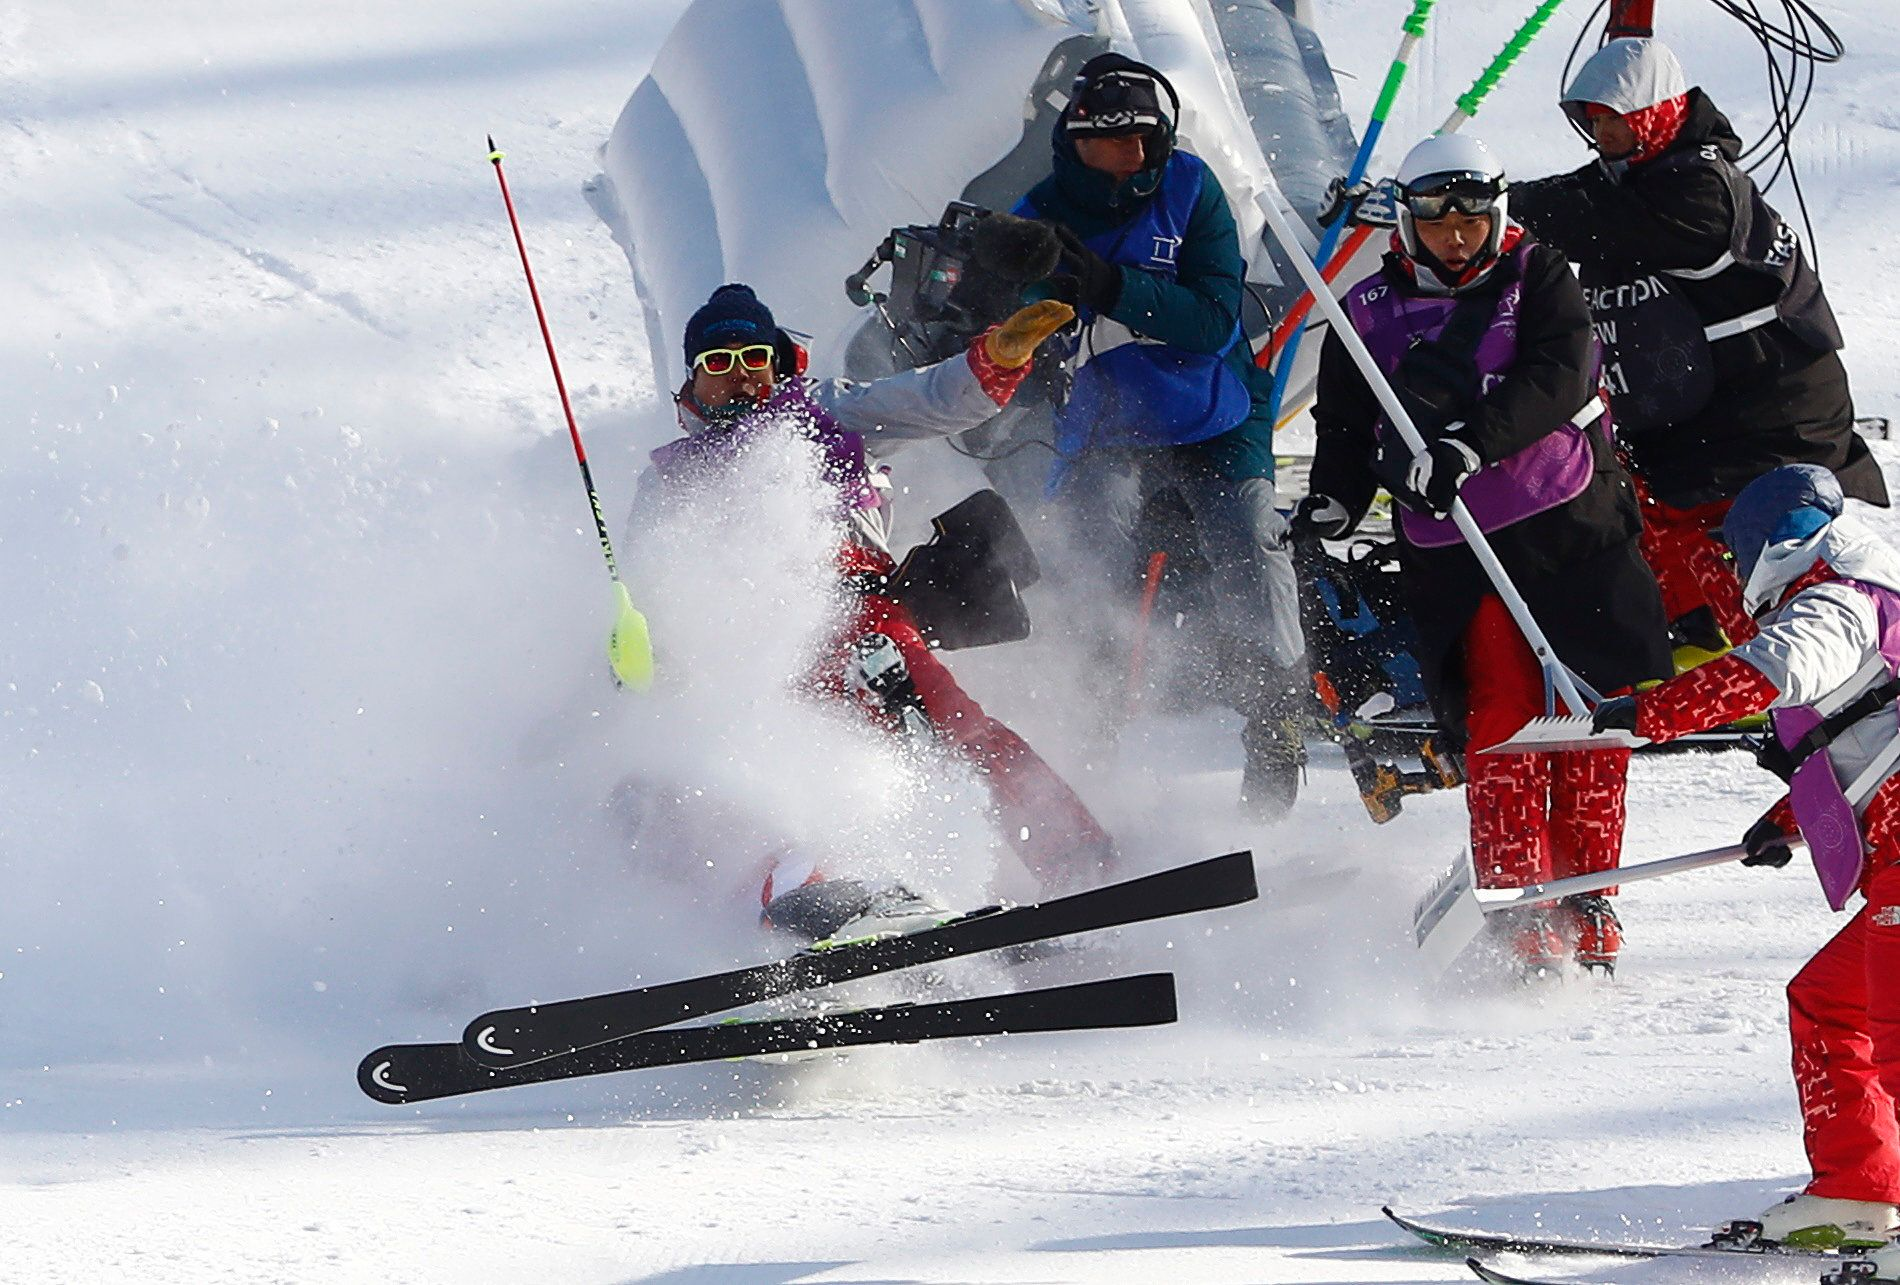 Austria'sMatthias Mayer crashed into media personnel during the men's alpine combined event on